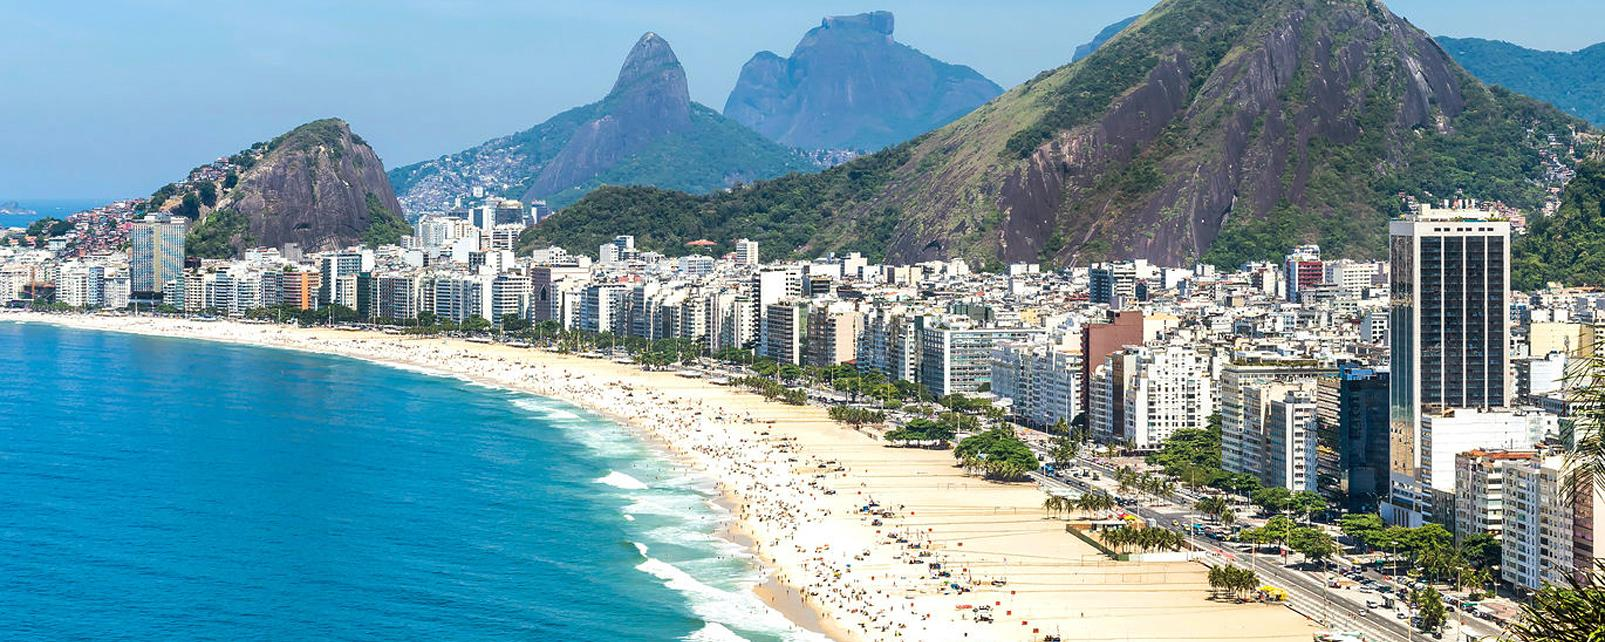 Informations pratiques br sil easyvoyage - Residence consolacao sao paulo au bresil ...